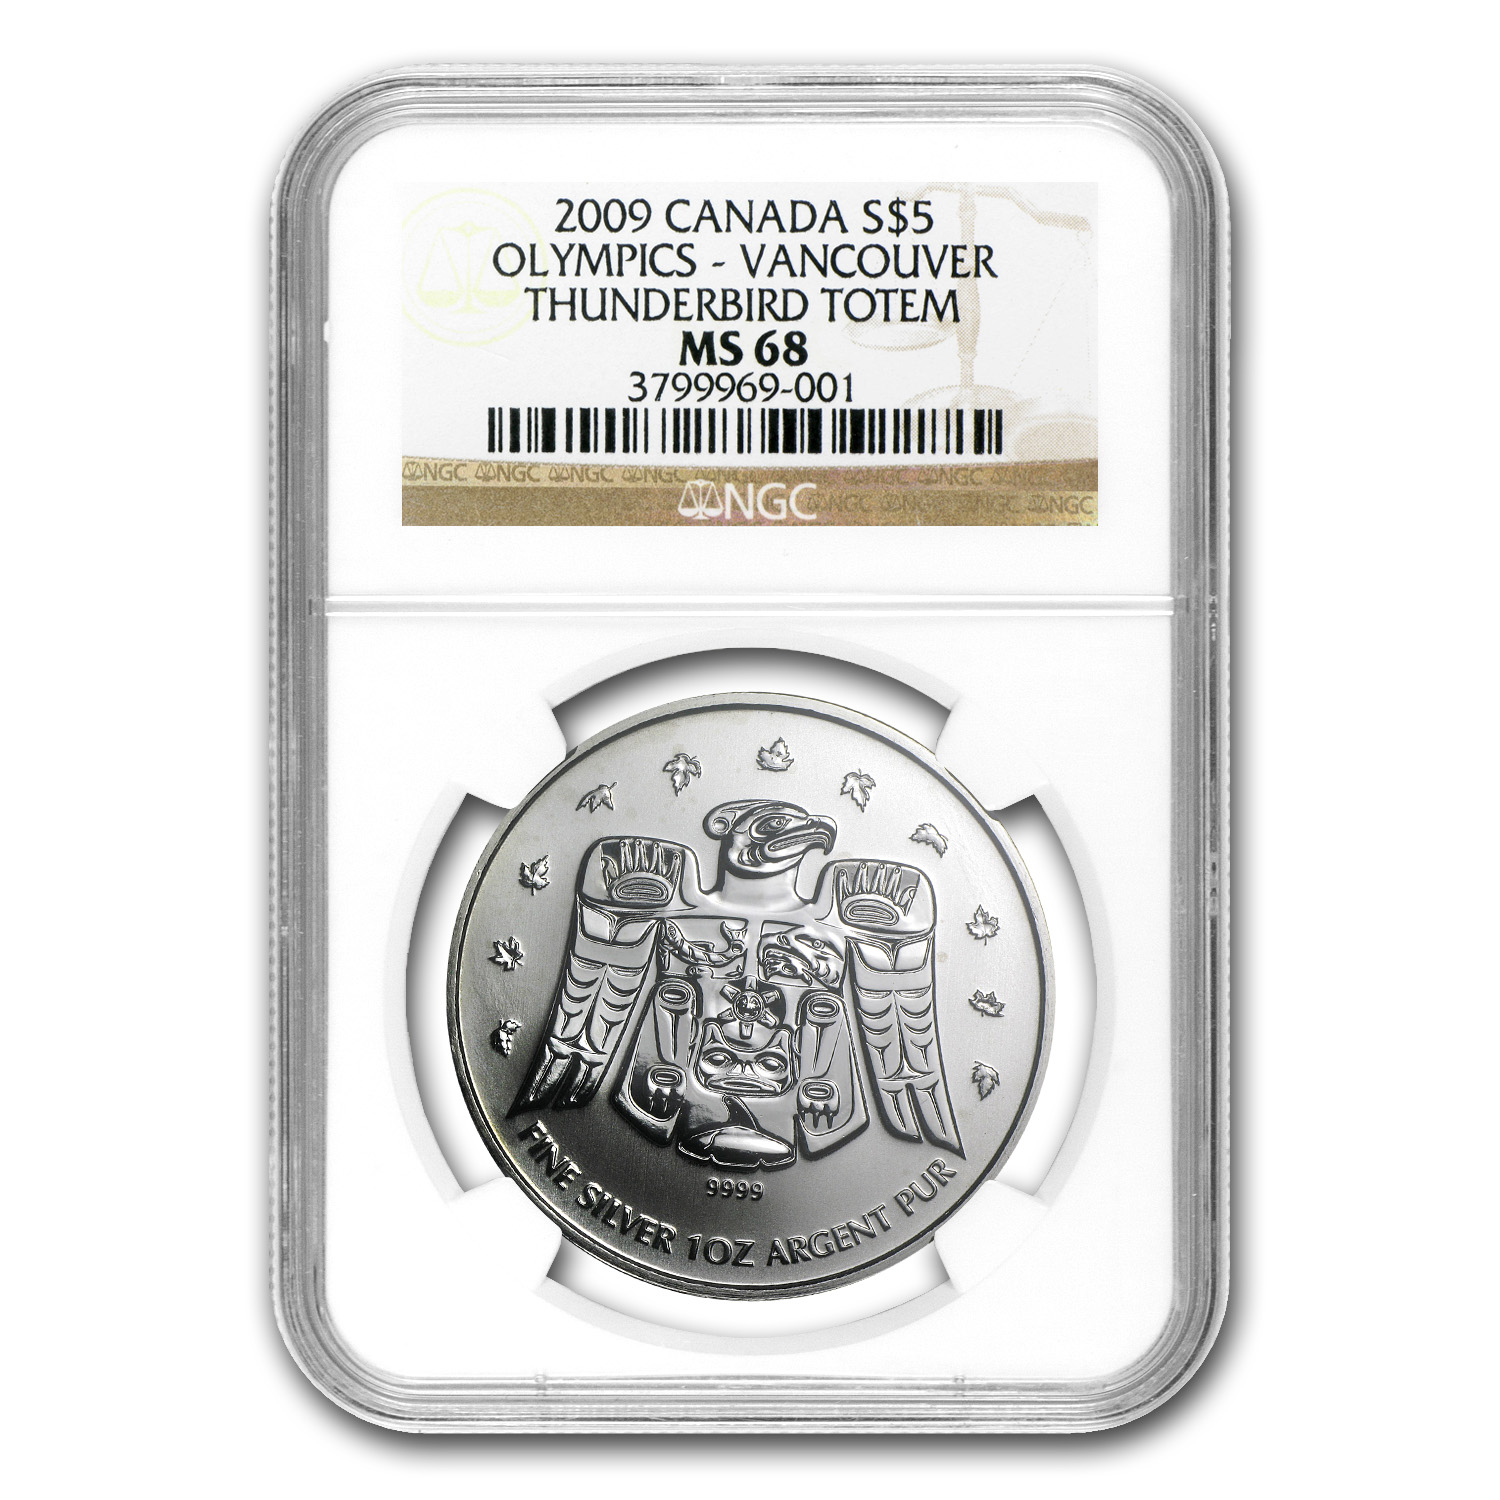 2009 1 oz Silver Canadian Olympic Thunderbird Totem MS-68 NGC